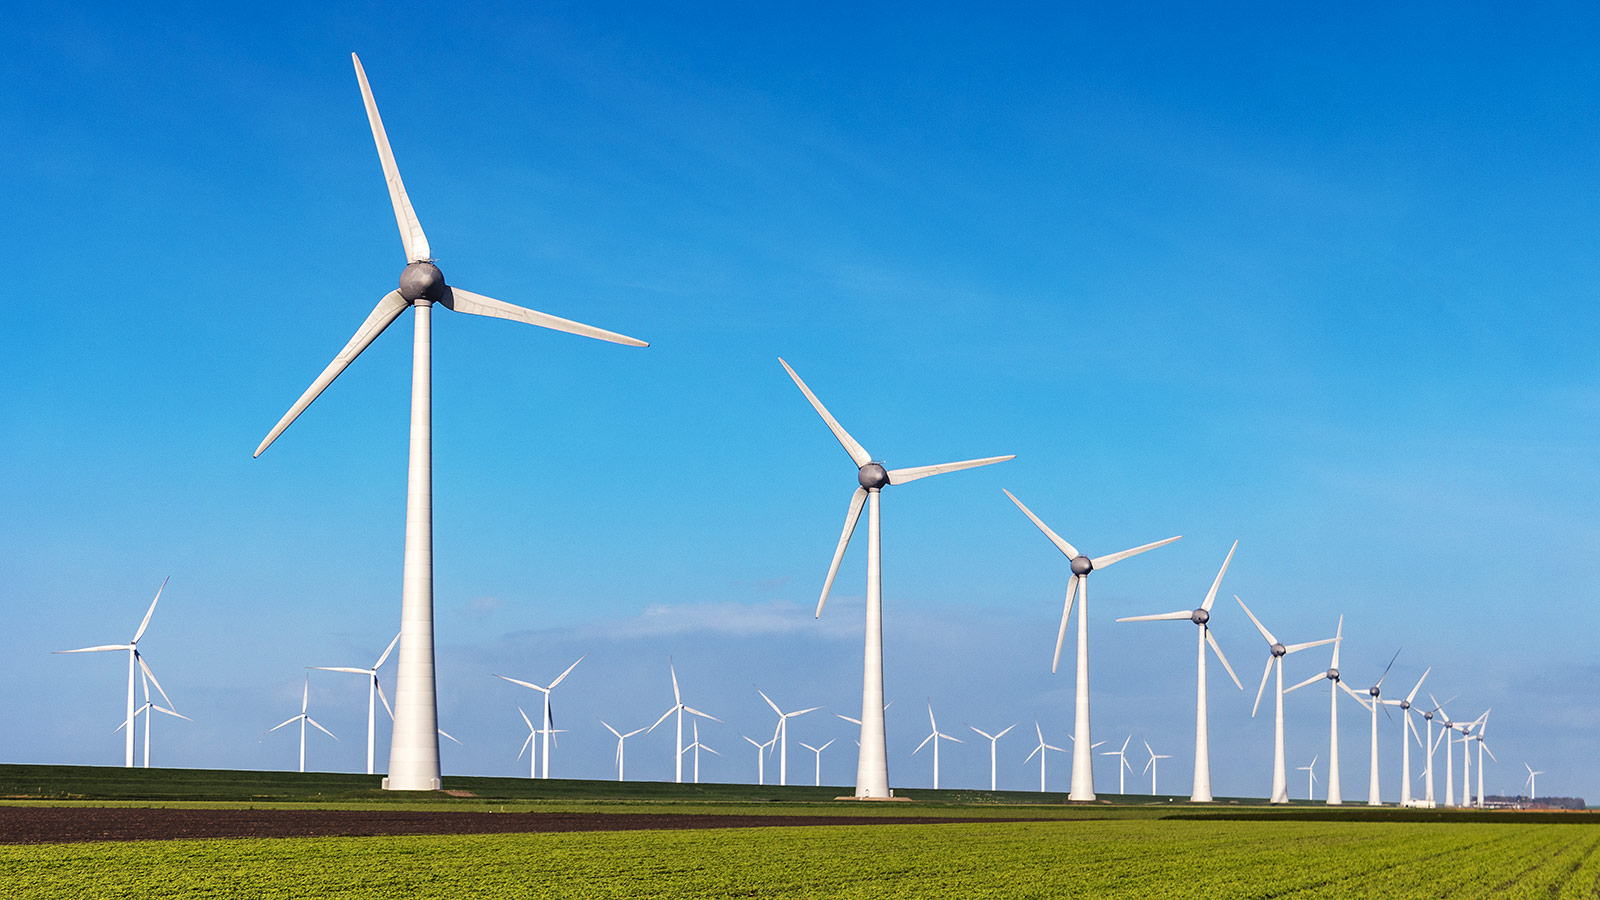 Looking for a long-term career? Here's why clean energy's a good place to start